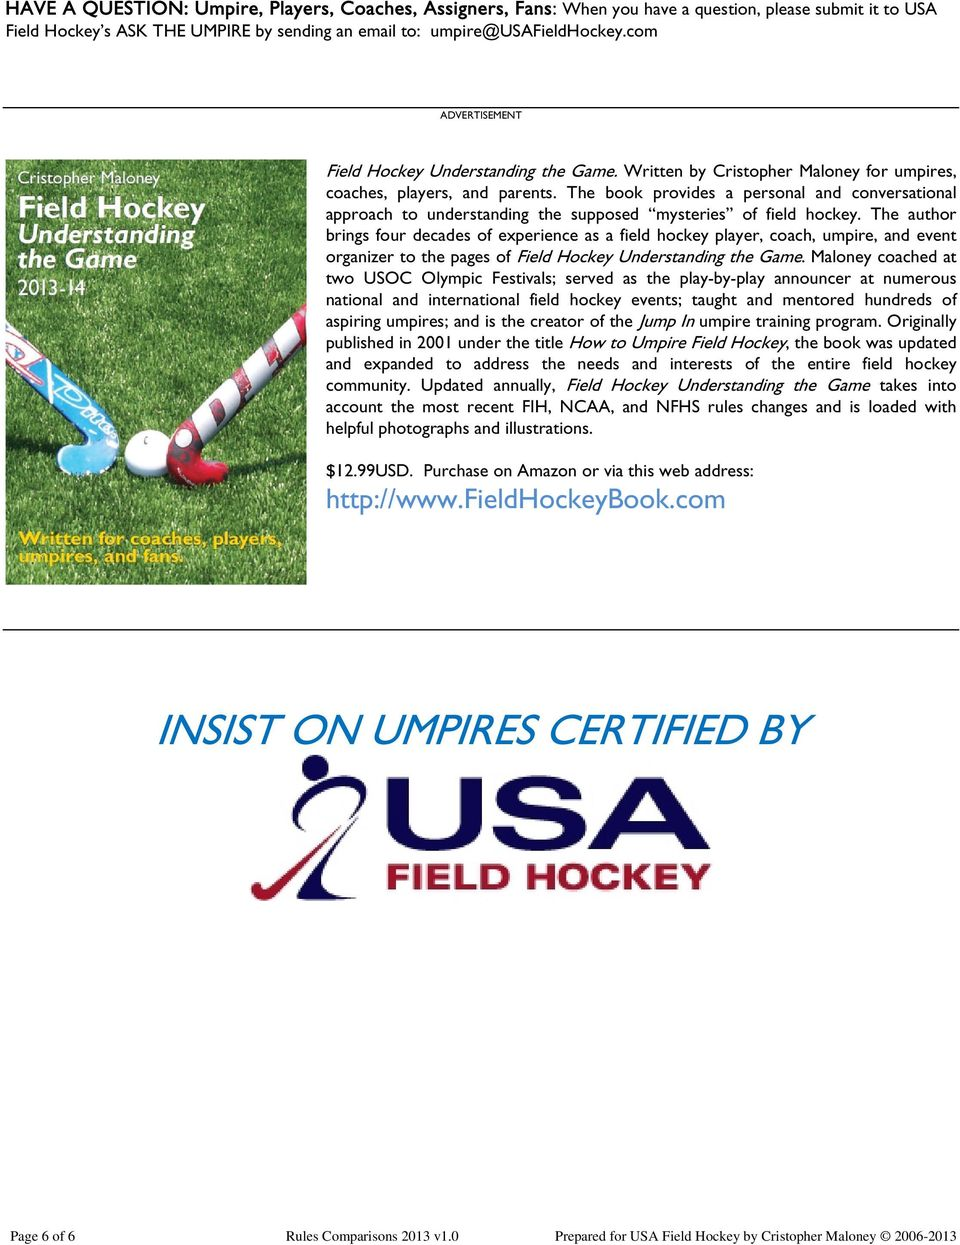 The book provides a personal and conversational approach to understanding the supposed mysteries of field hockey.